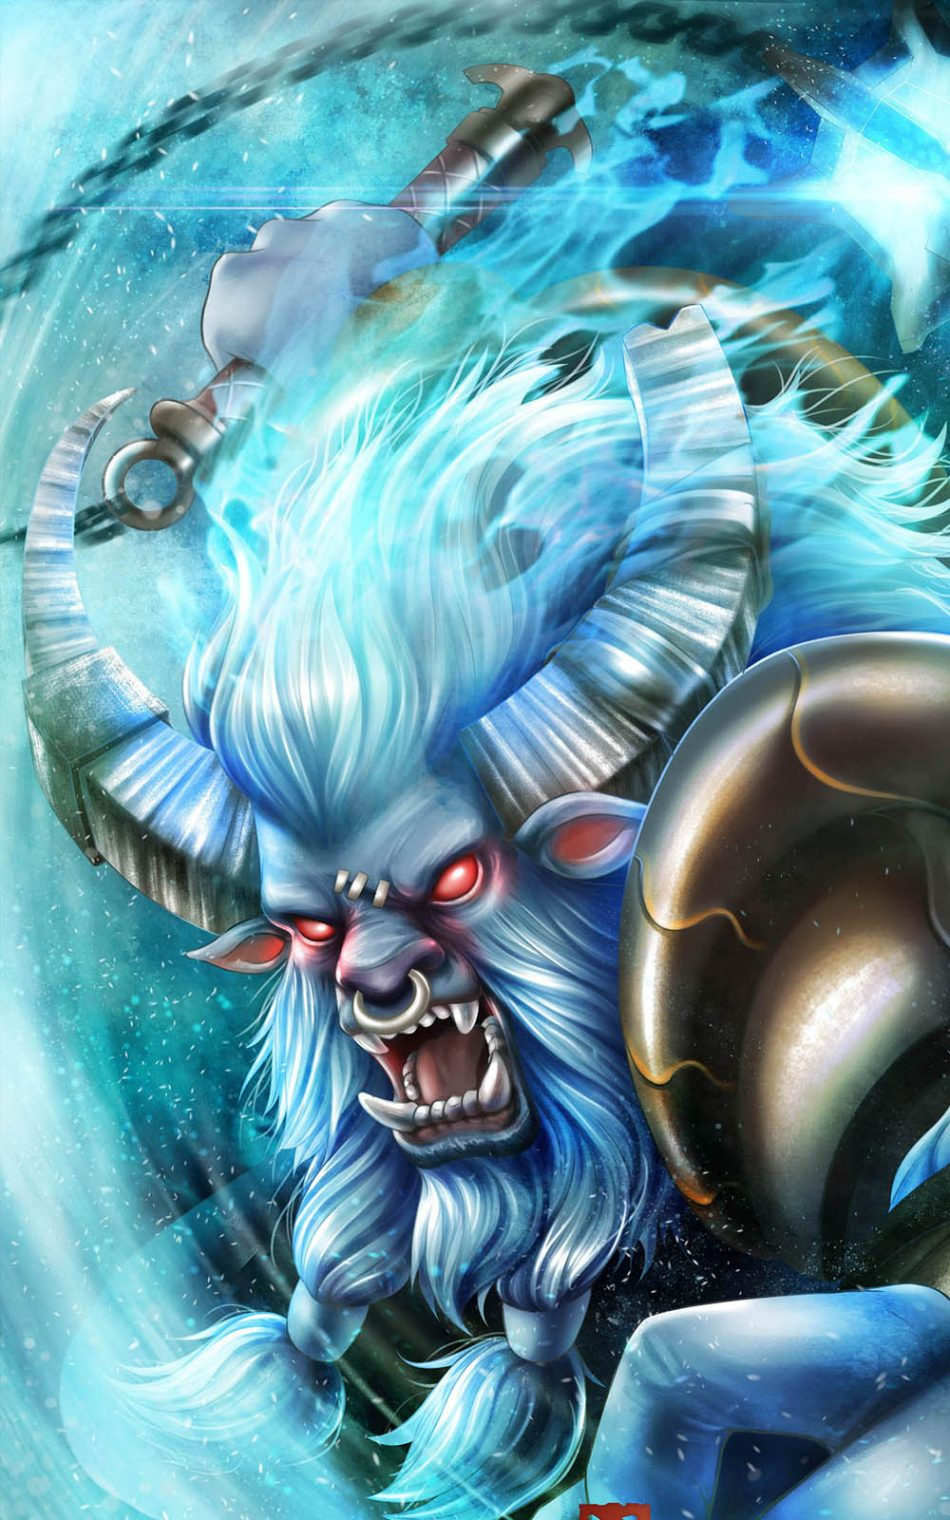 spirit breaker dota 2 download free 100 pure hd quality mobile